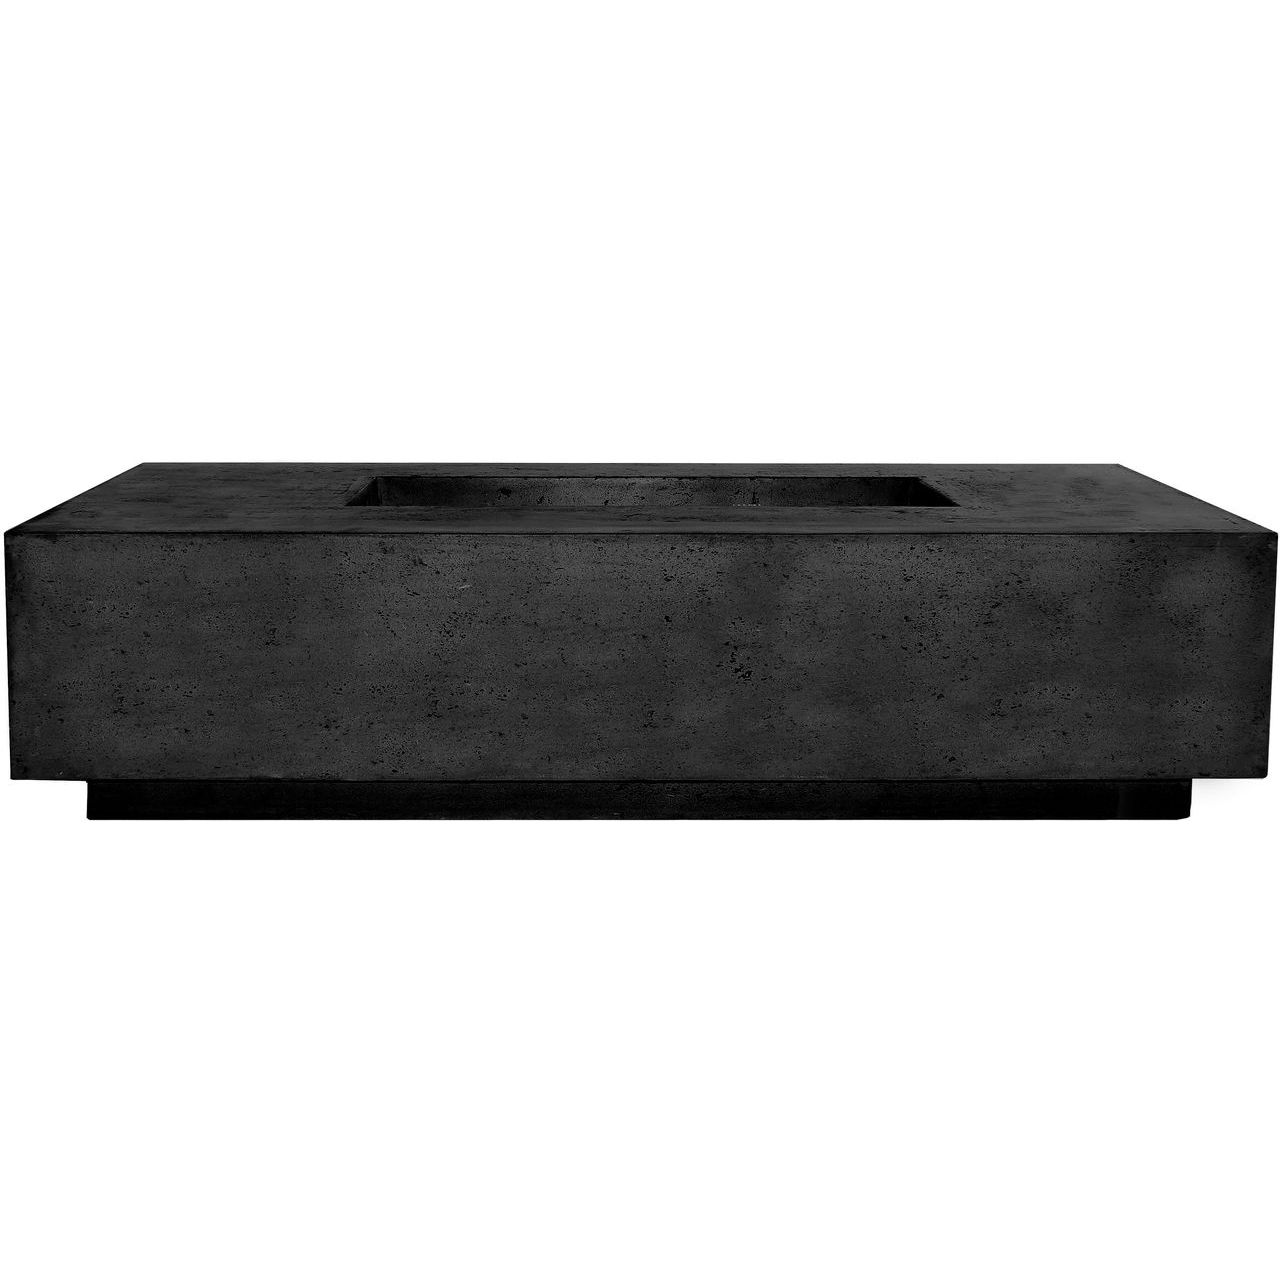 Prism Hardscapes Tavola 66 Slim Fire Table in Ebony - NG